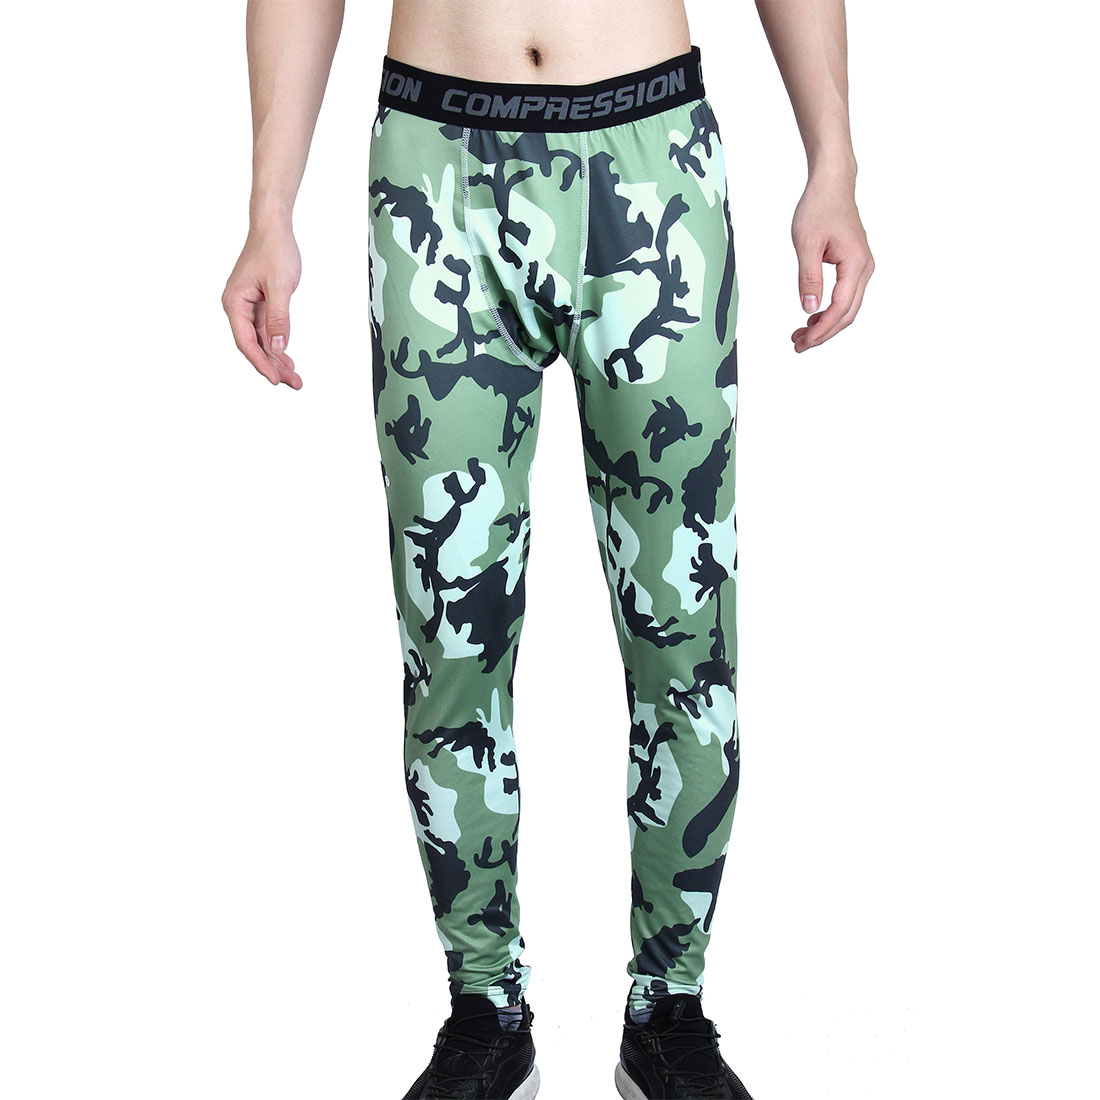 Men Polyester Fiber Compression Base Layer Pants Army Green Camouflage L US W28 by